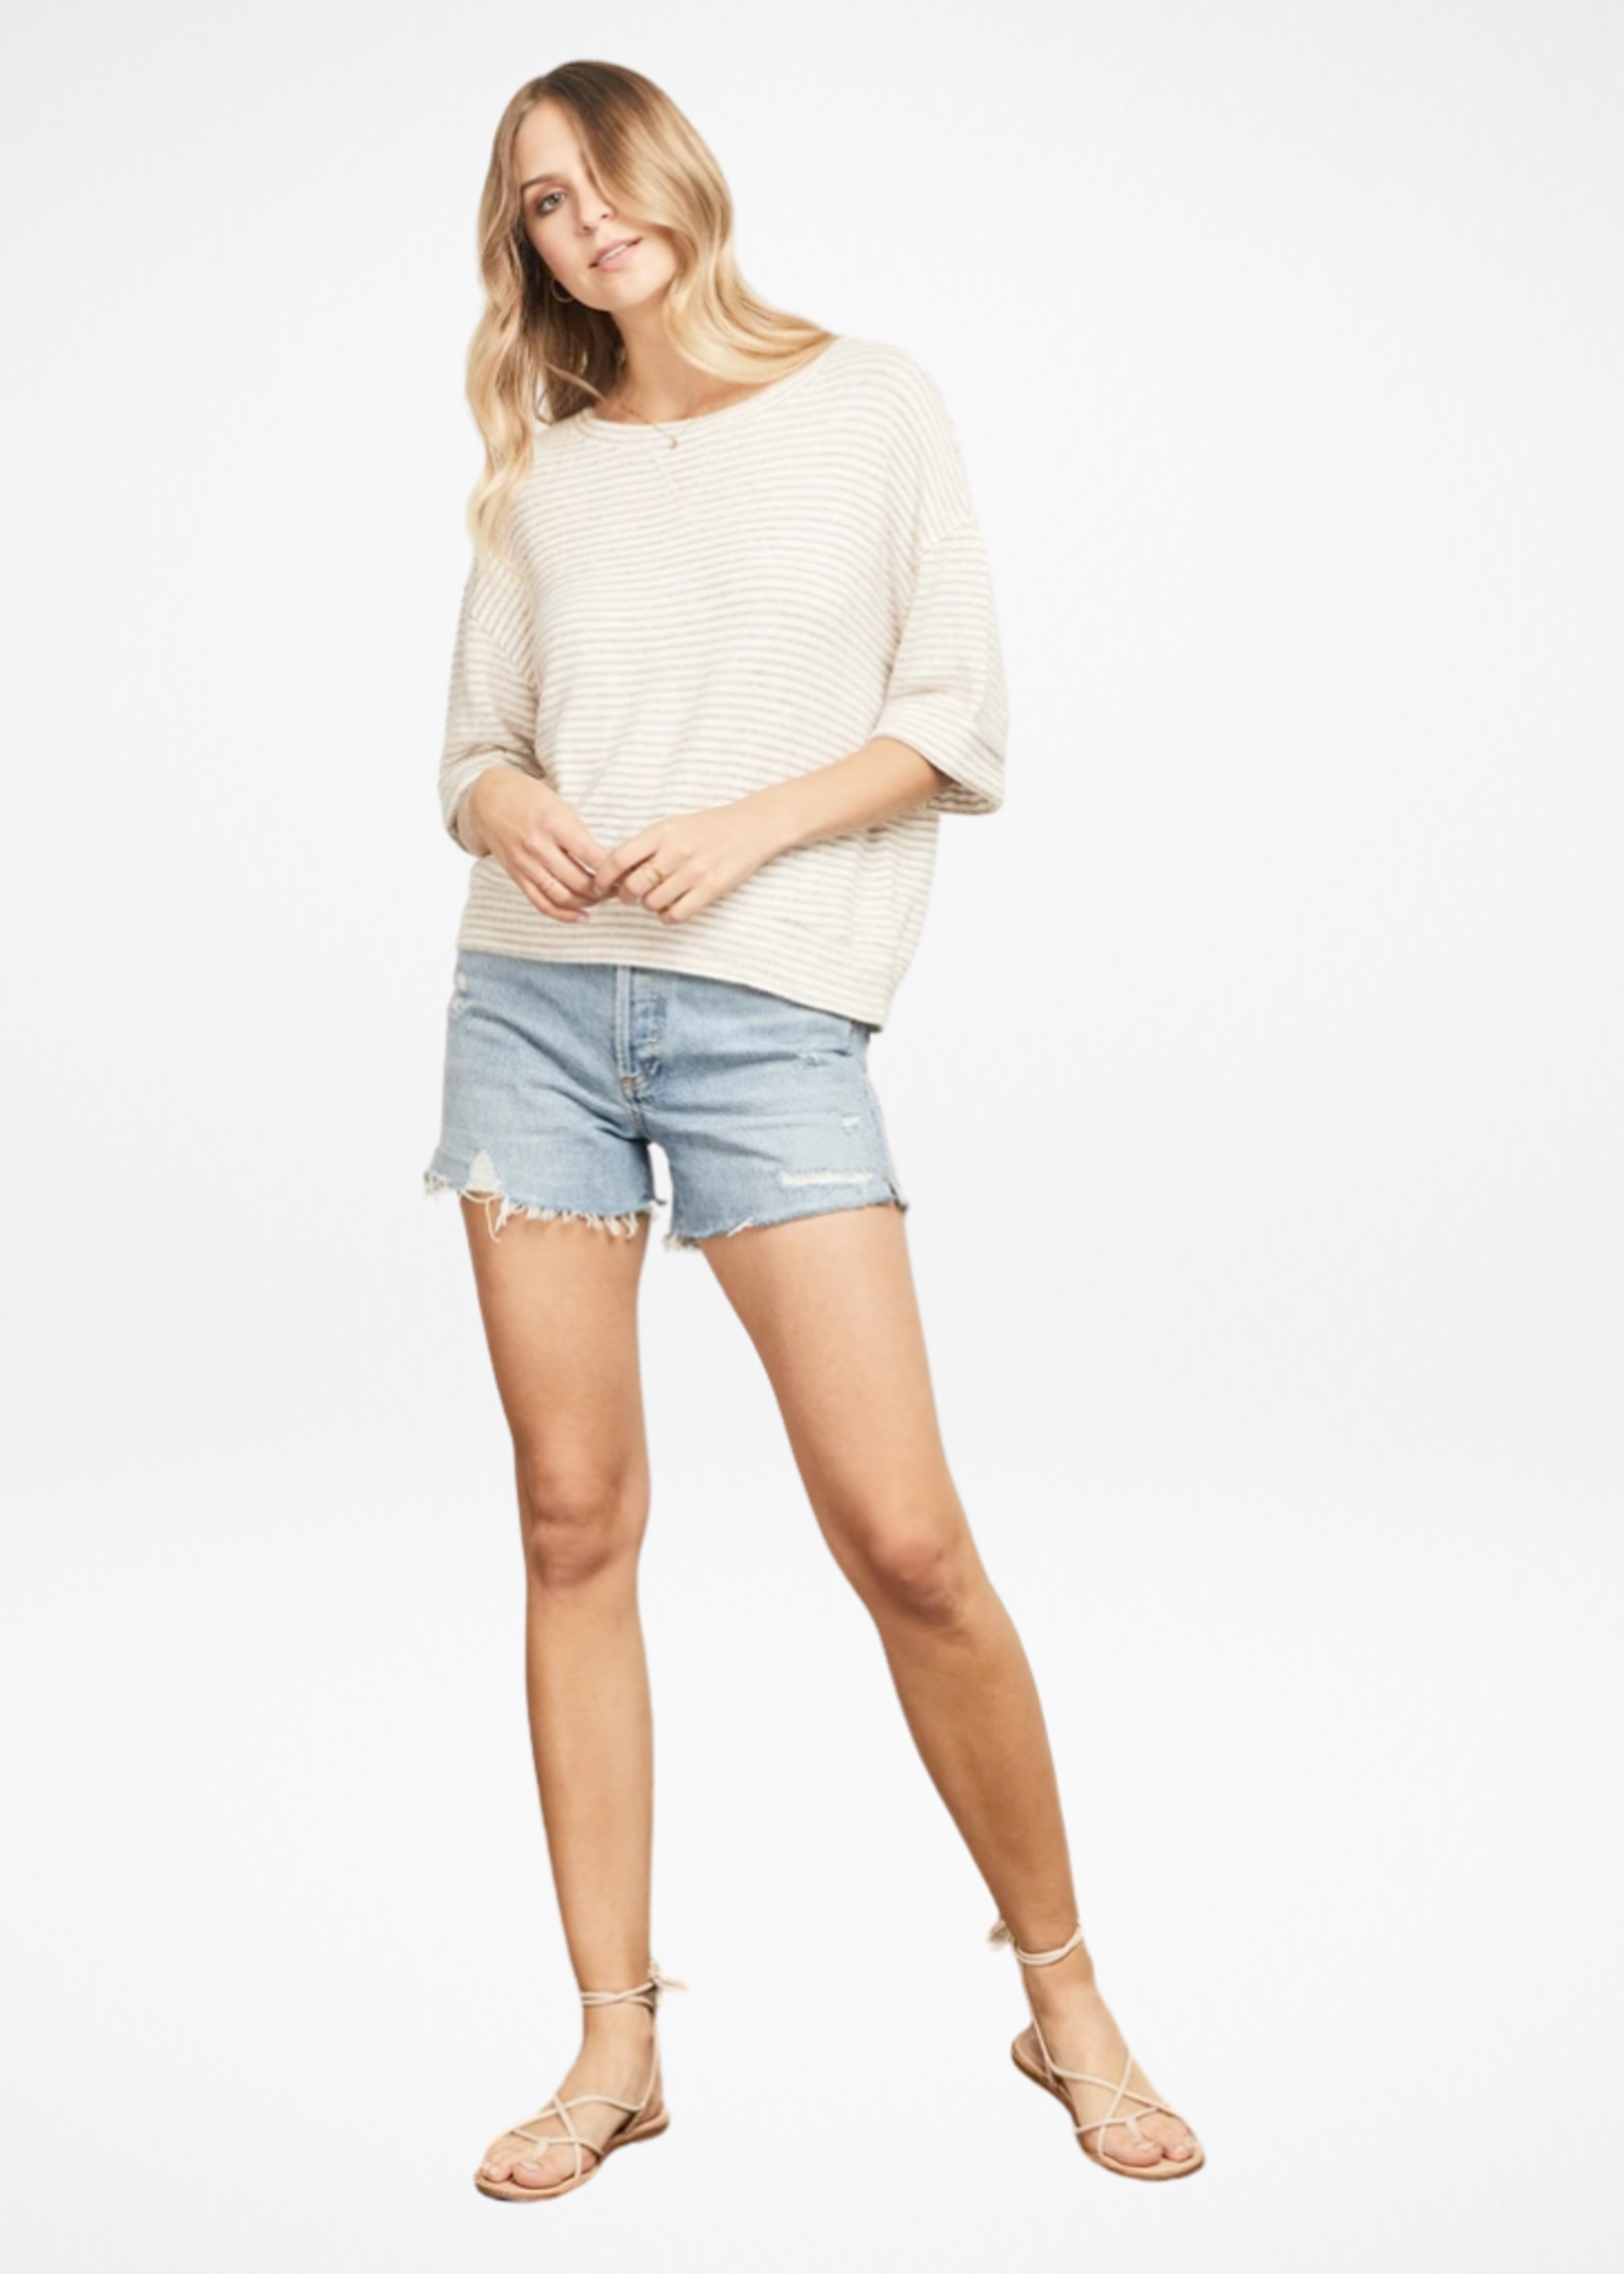 GENTLE FAWN 21 GF 3 COLLINS TOP